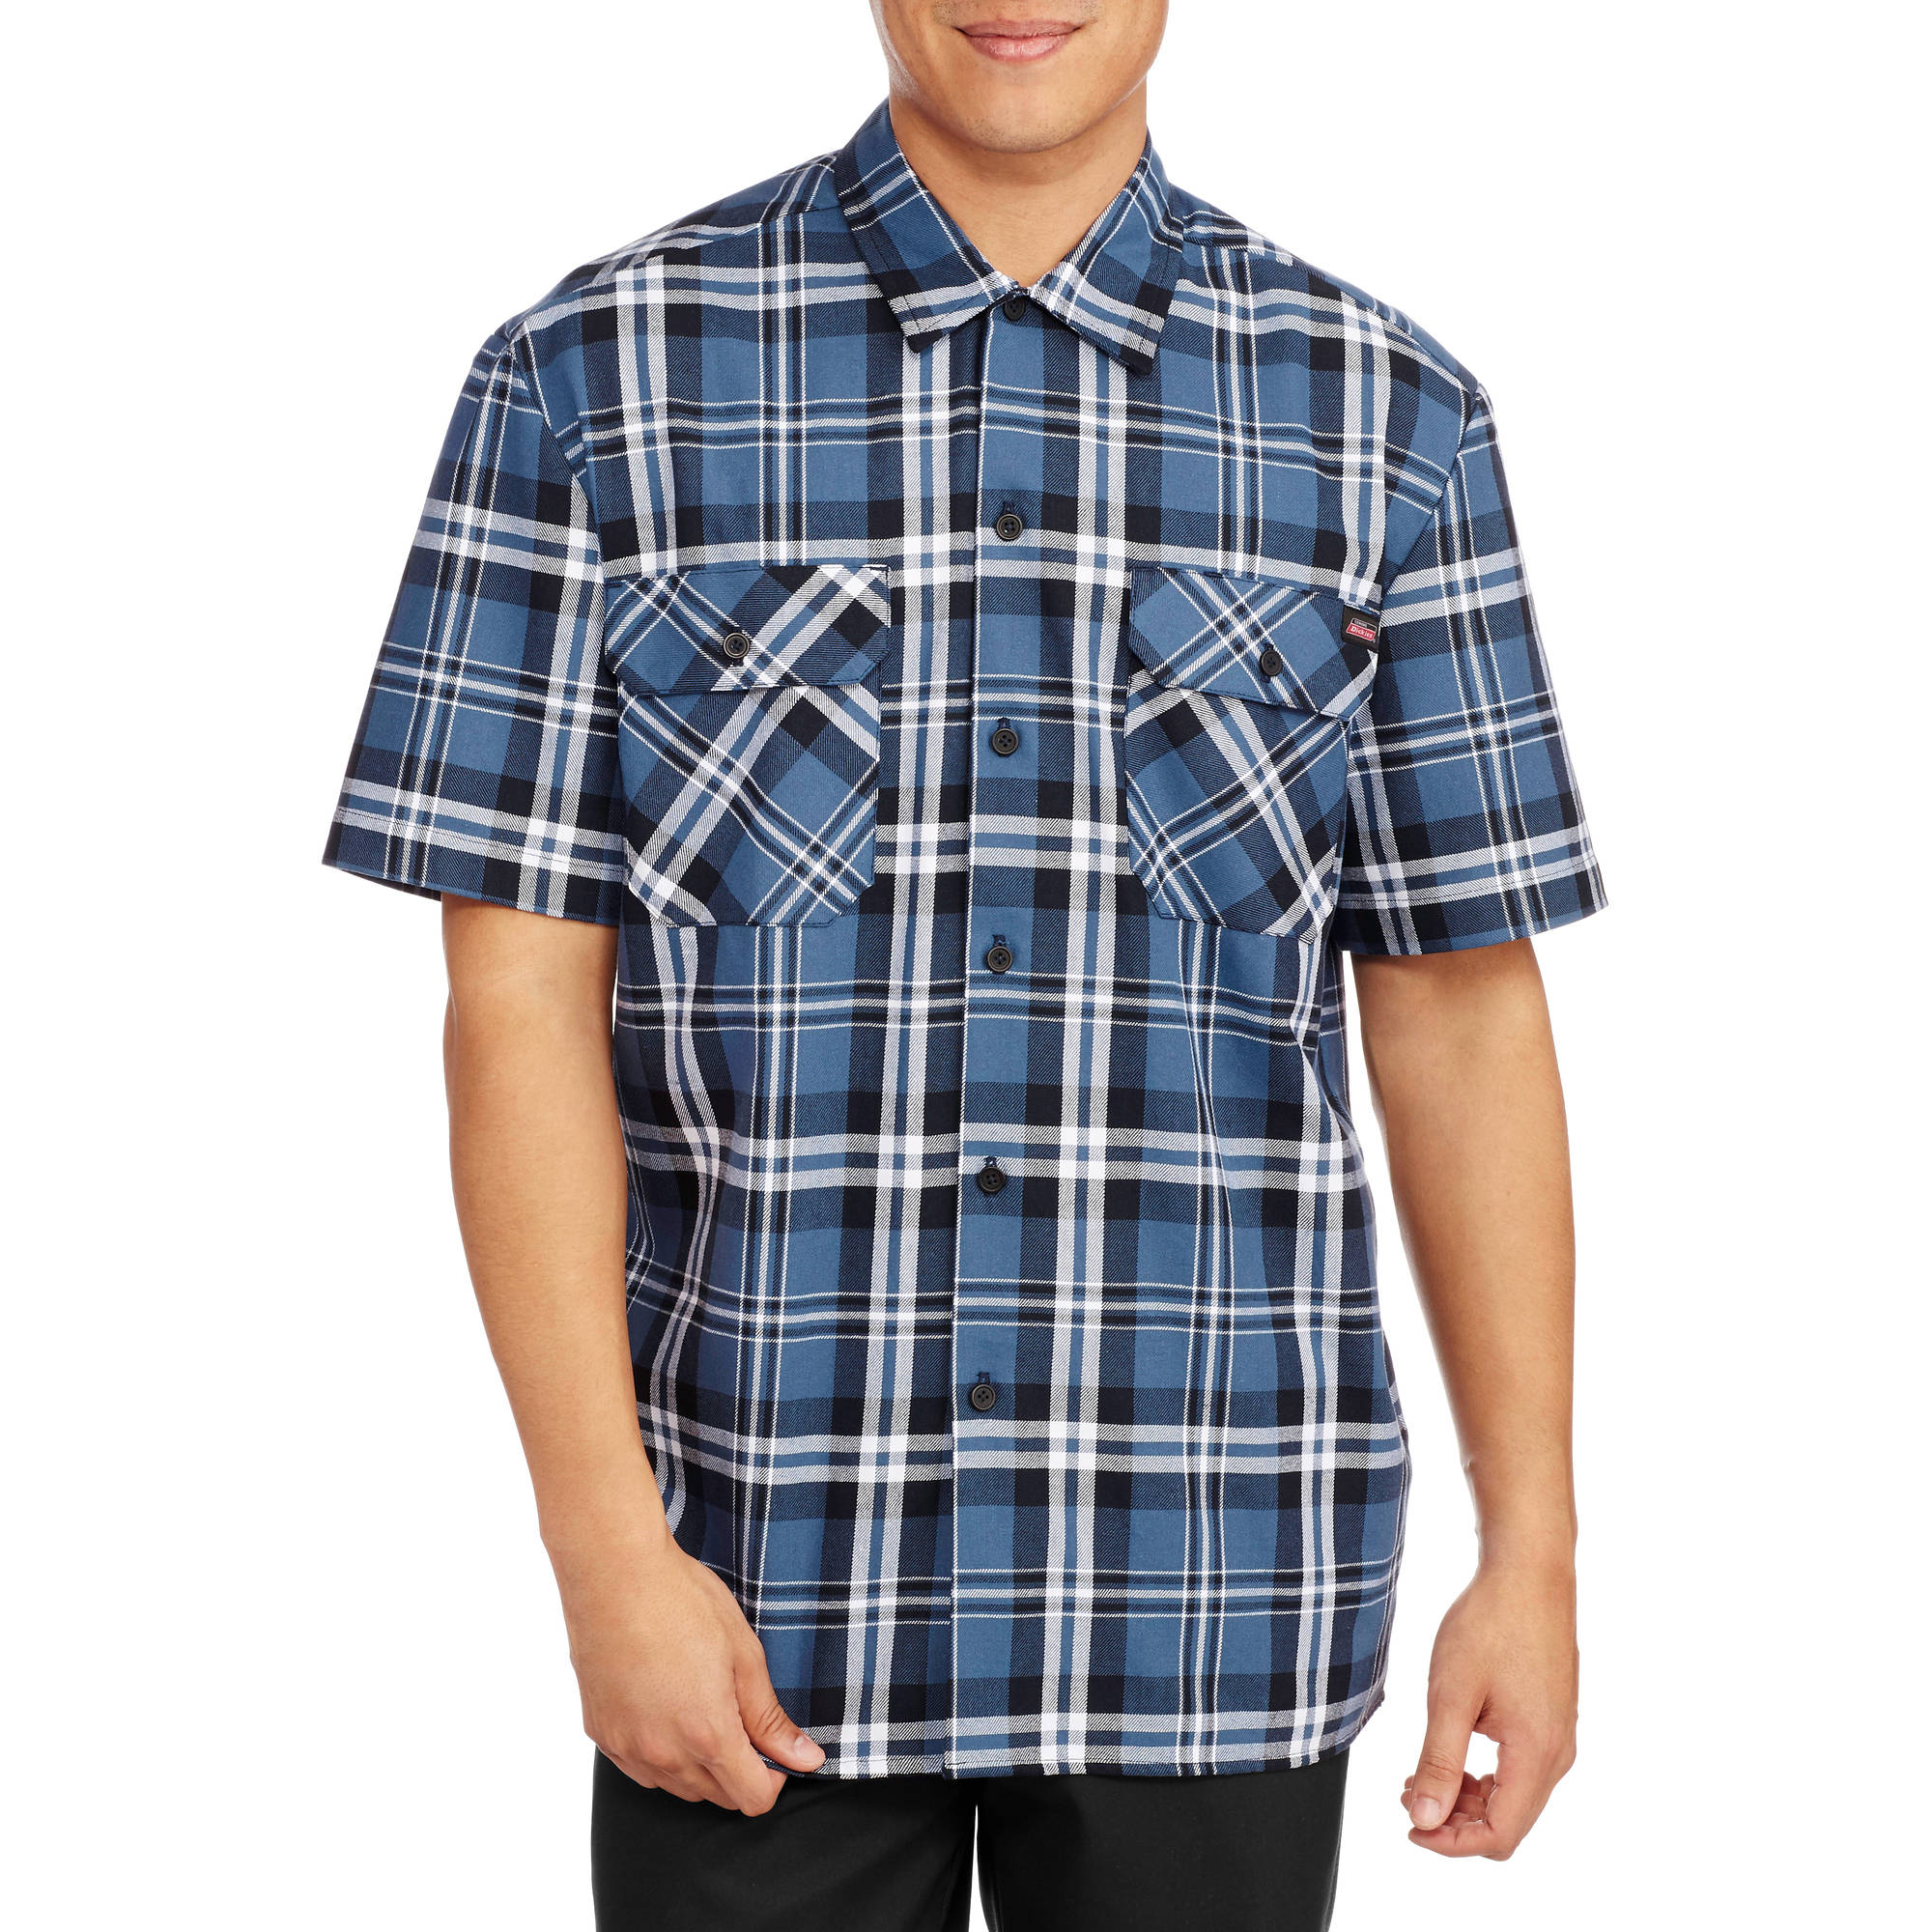 Dickies Men's Short Sleeve Two Pocket Plaid Workshirt